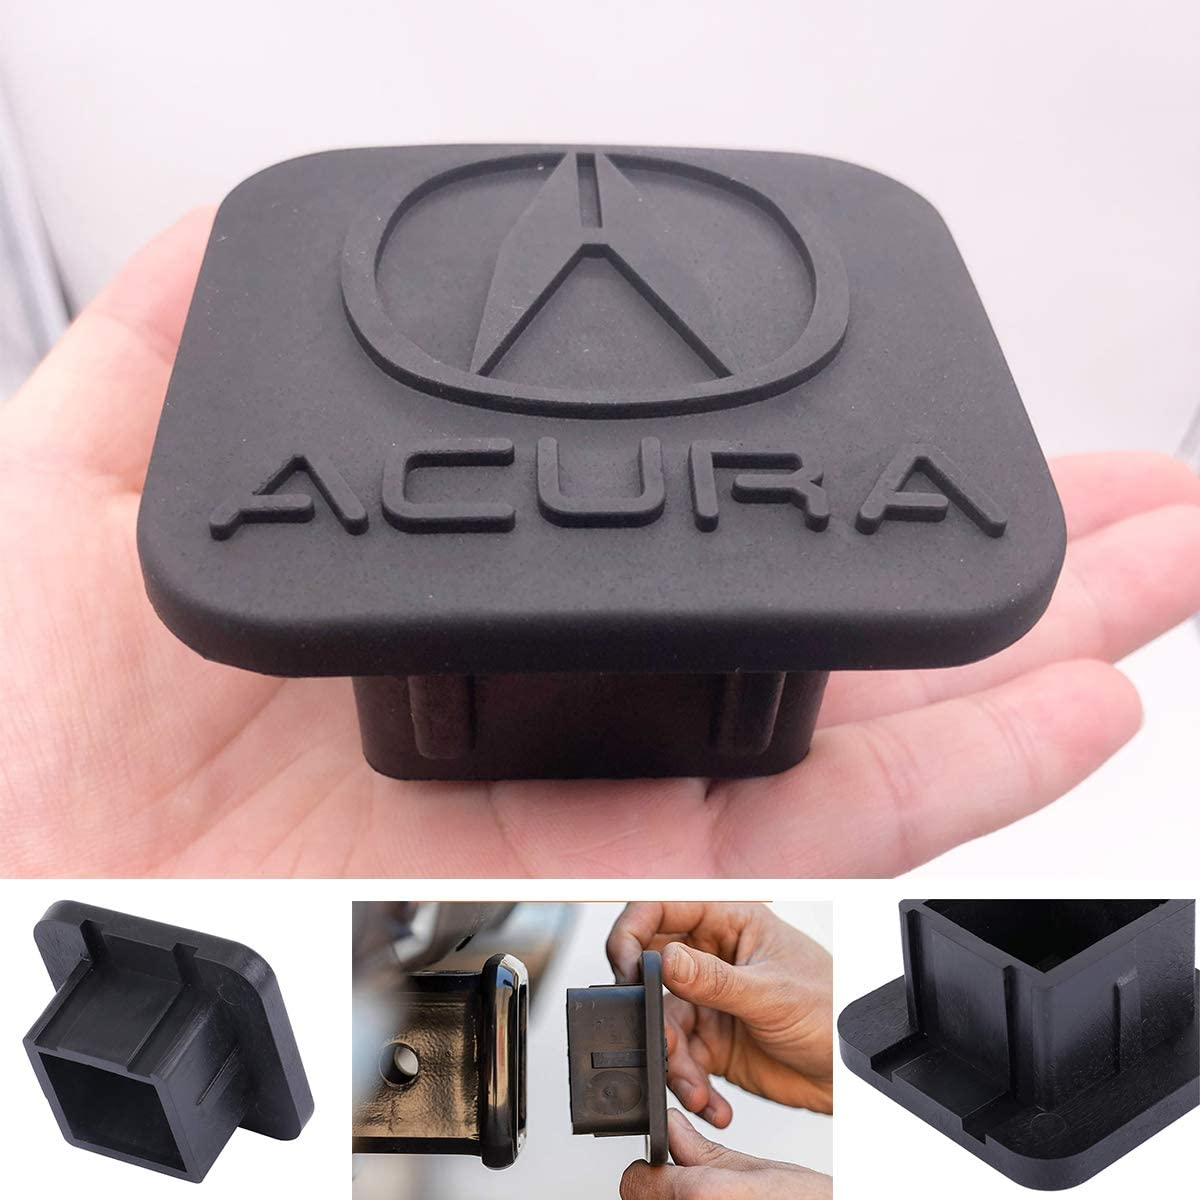 Trailer Hitch Tube Cover Plug Cap for Acura,Rubber Receiver Tube Hitch Plug,Trailer Hitch Cover (fit Acura)